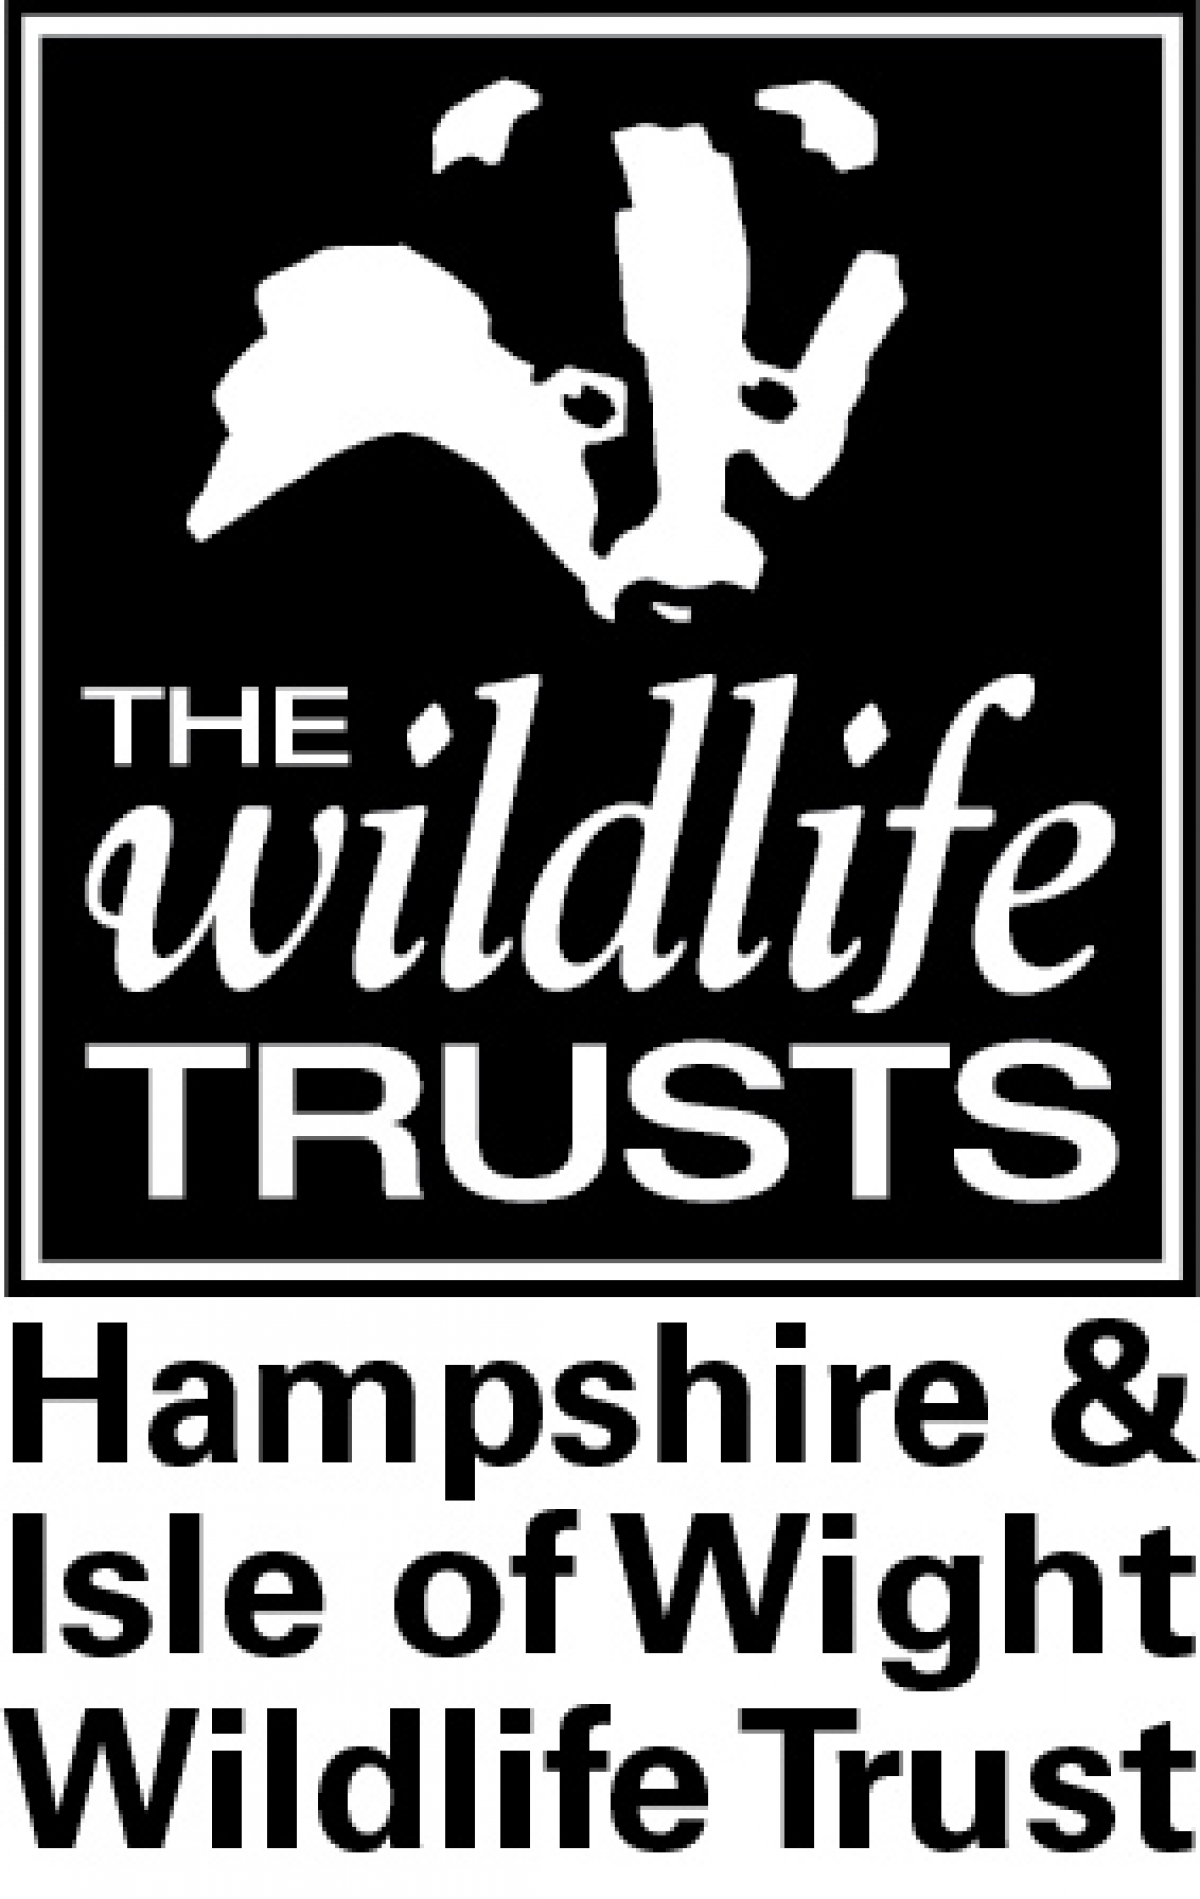 Hampshire & Isle of Wight Wildlife Trust eCards